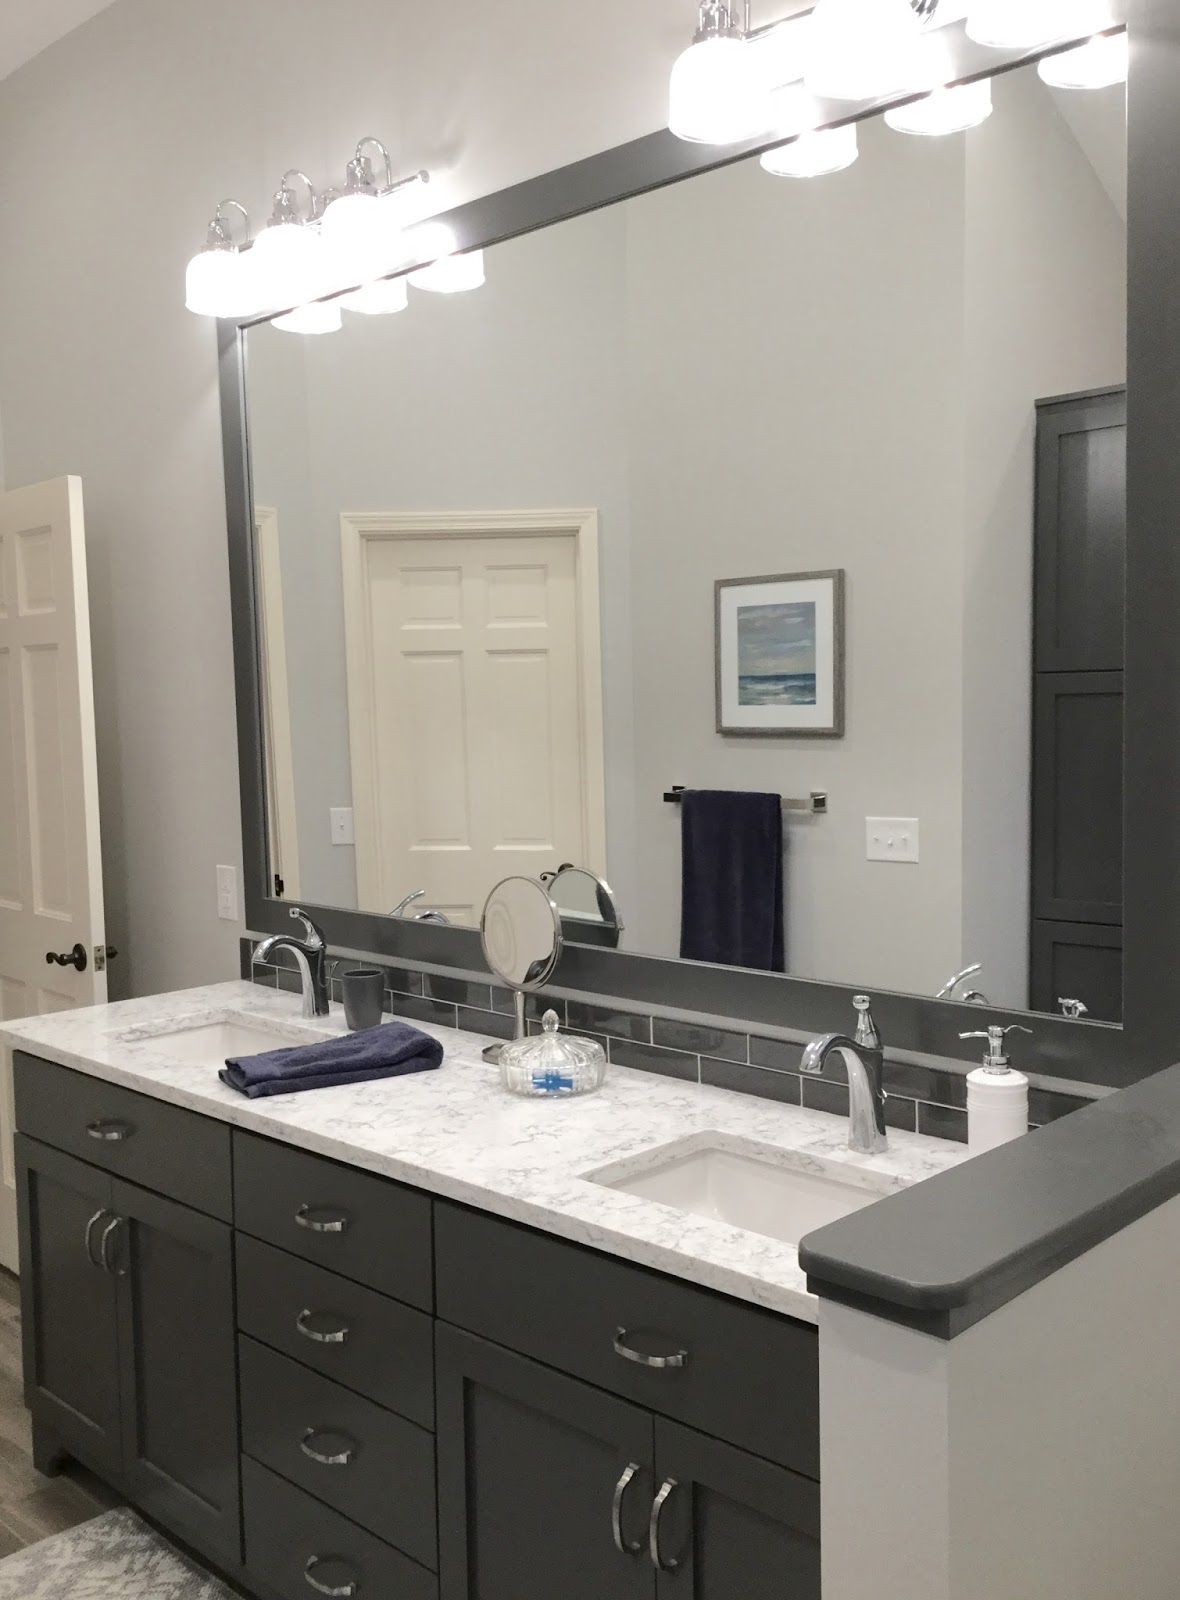 Hope You Enjoyed Seeing This Master Bathroom En Suite Renovation Come